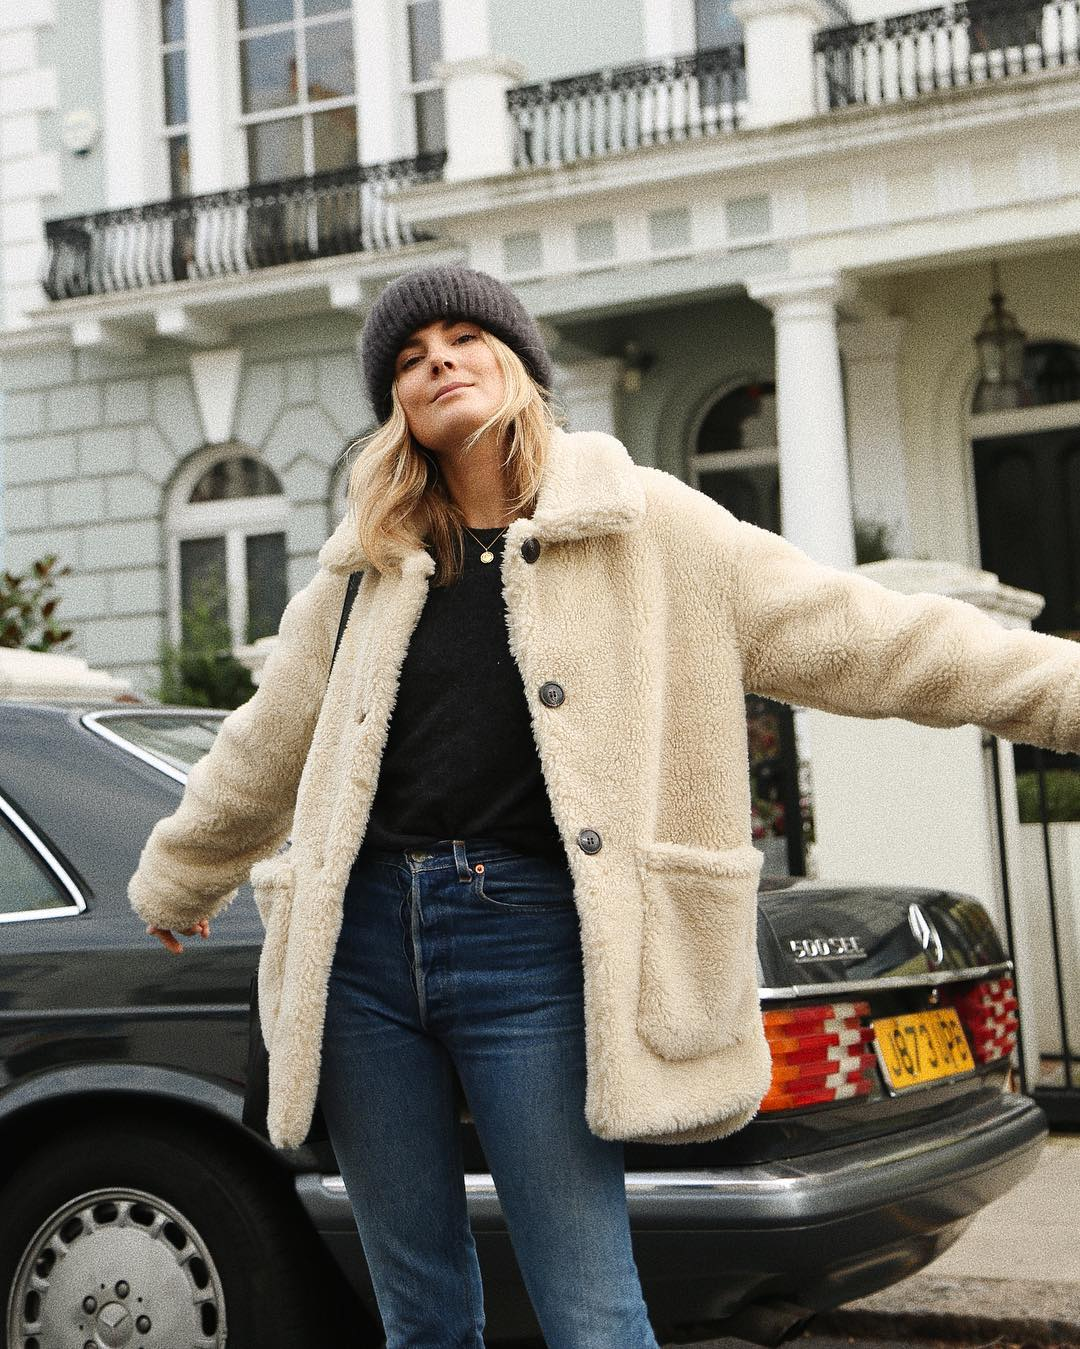 19 Teddy Coats We're Loving This Winter — Lucy Williams in a Beanie, Beige Coat, Black Top, and Jeans